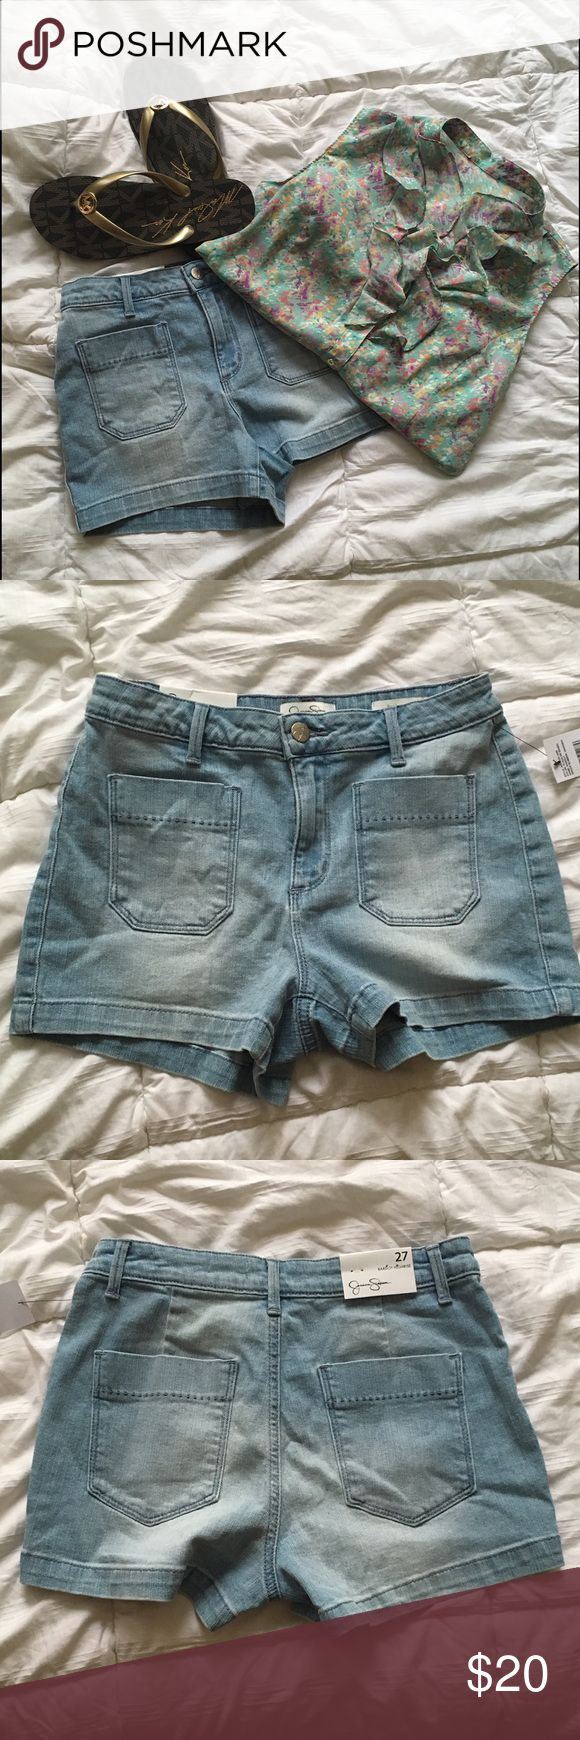 Jessica Simpson Jeans Jessica Simpson Jeanswear. Light blue. Never worn. Bardot highrise. 98% Cotton 2% Spandex. 2 inch inseam. Jessica Simpson Shorts